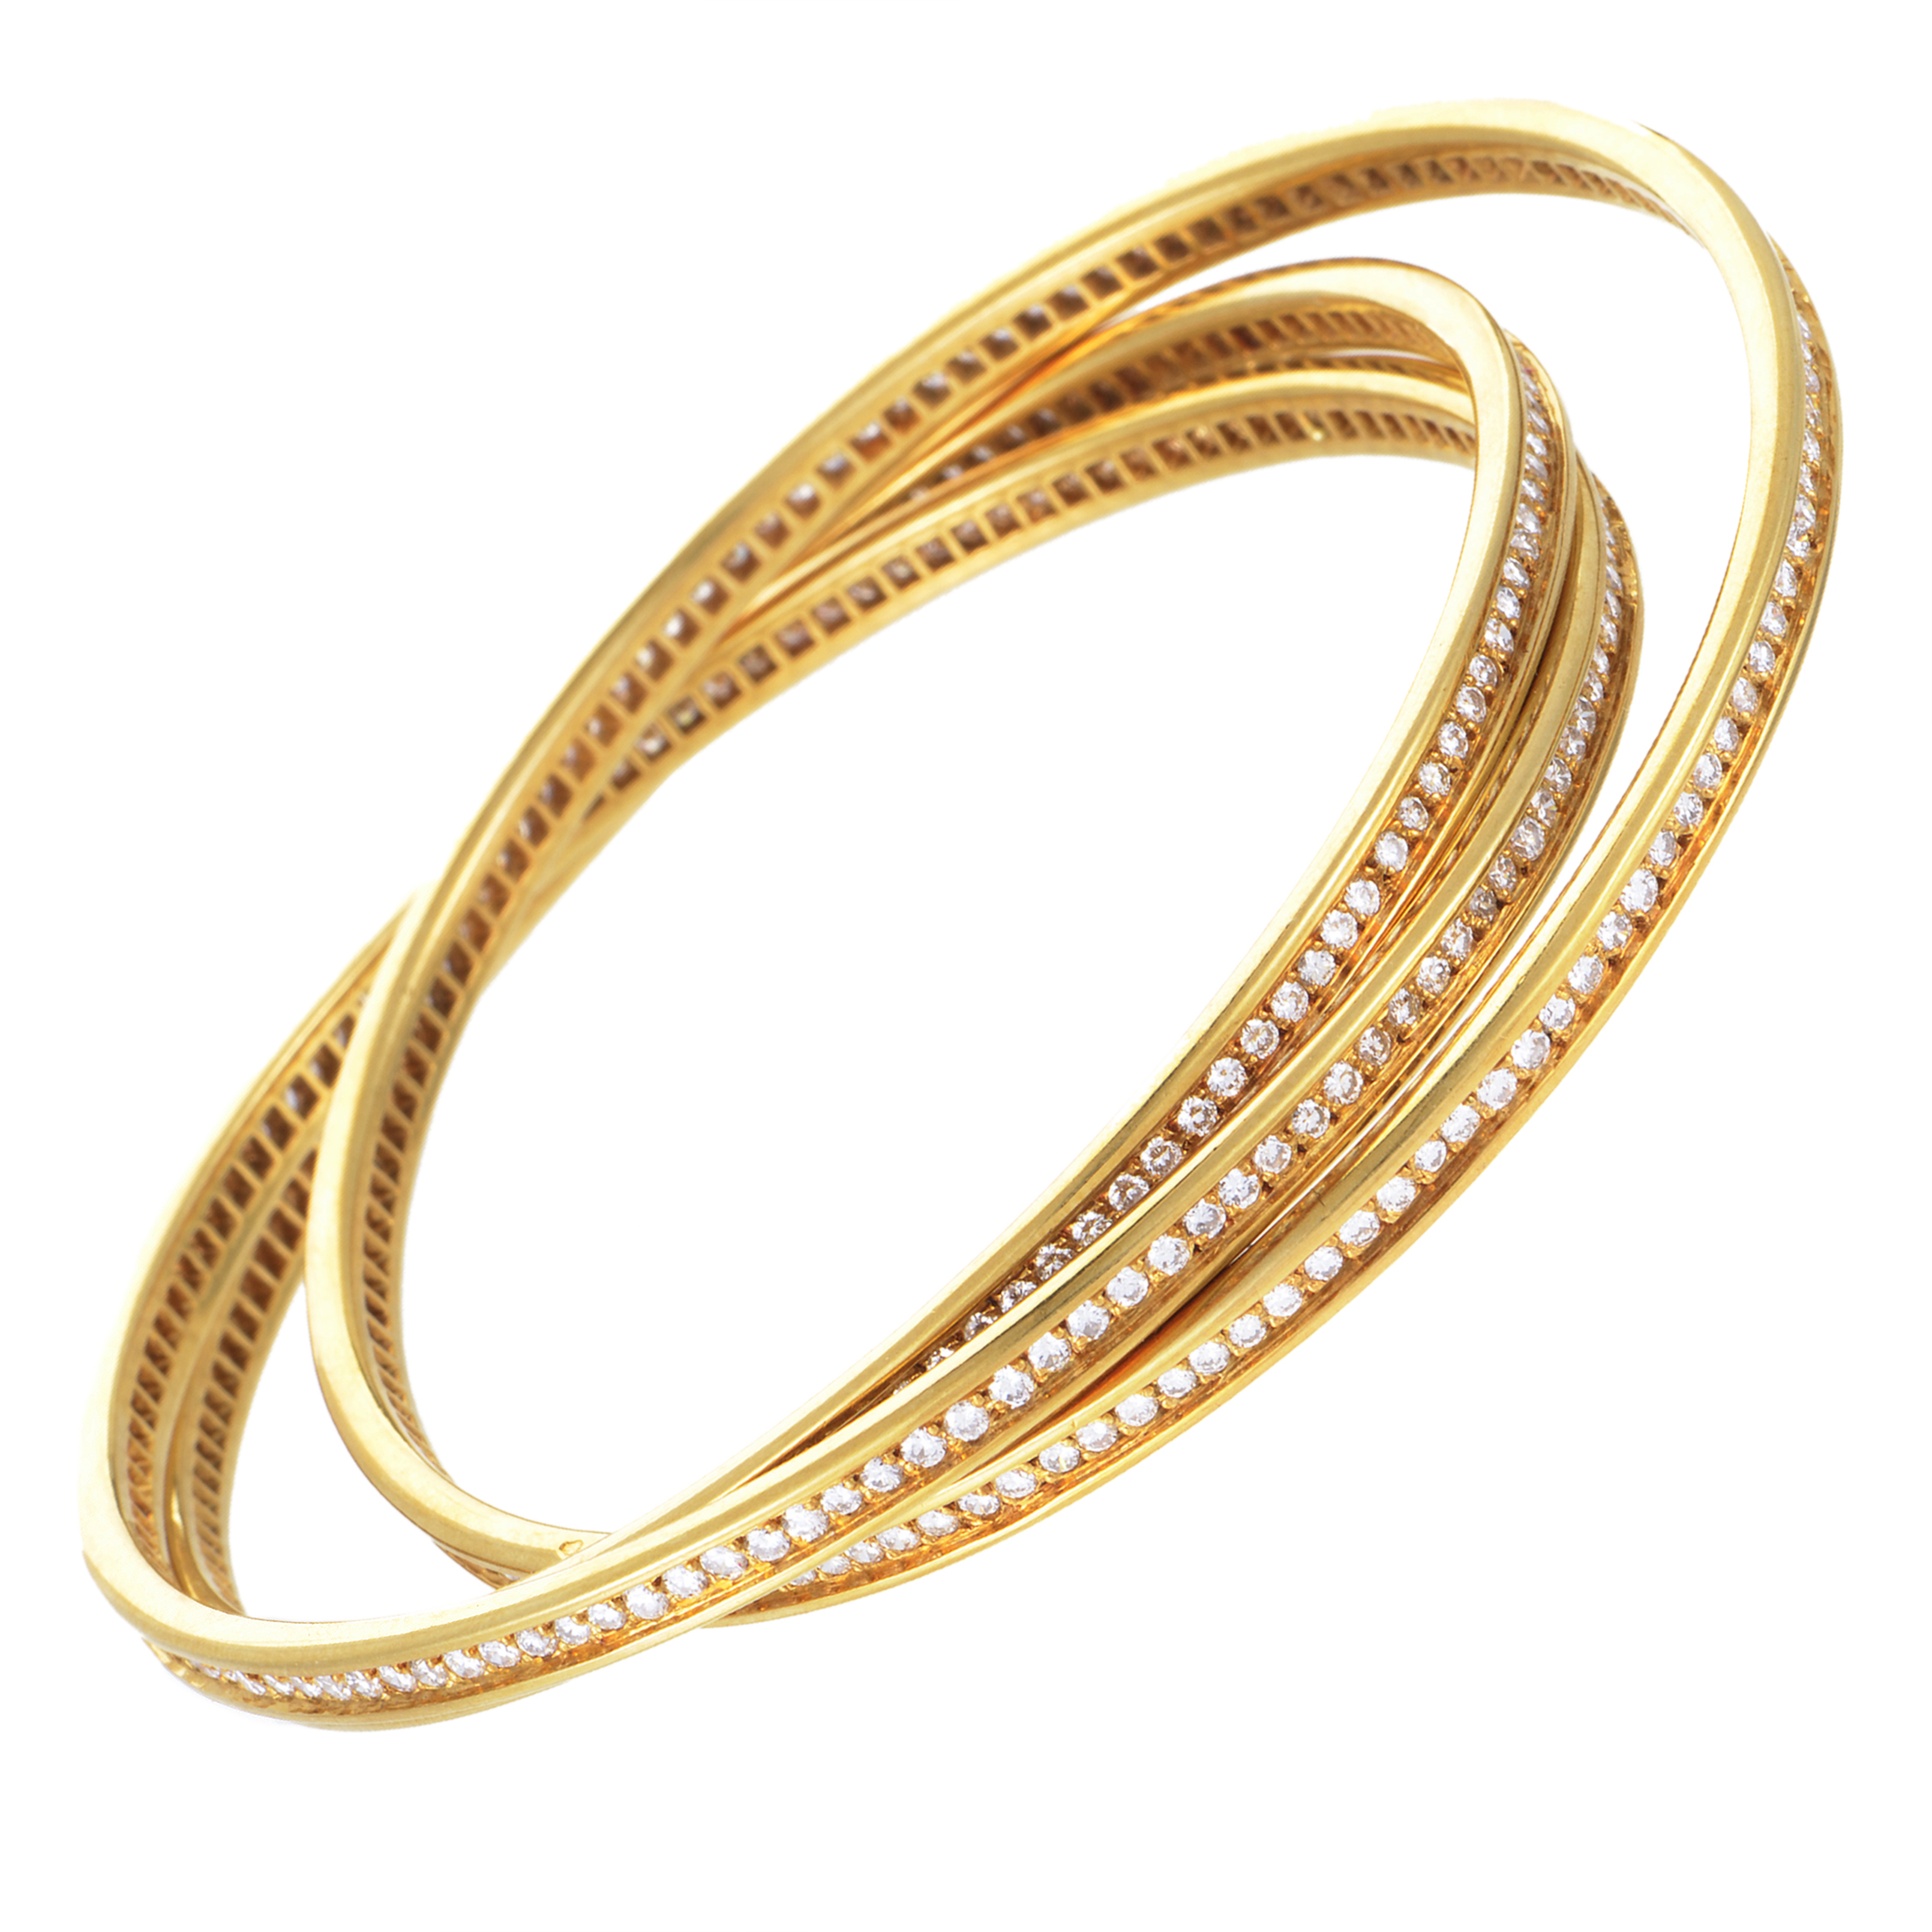 Cartier Womens 18k Yellow Gold Diamond Pave Rolling Bangle. Choker Necklace. Yellow Rings. Iconic Bracelet. Rope Pendant. Tag Rings. Real Emerald Stud Earrings. Double Row Diamond Anniversary Band. 18k Gold Earrings